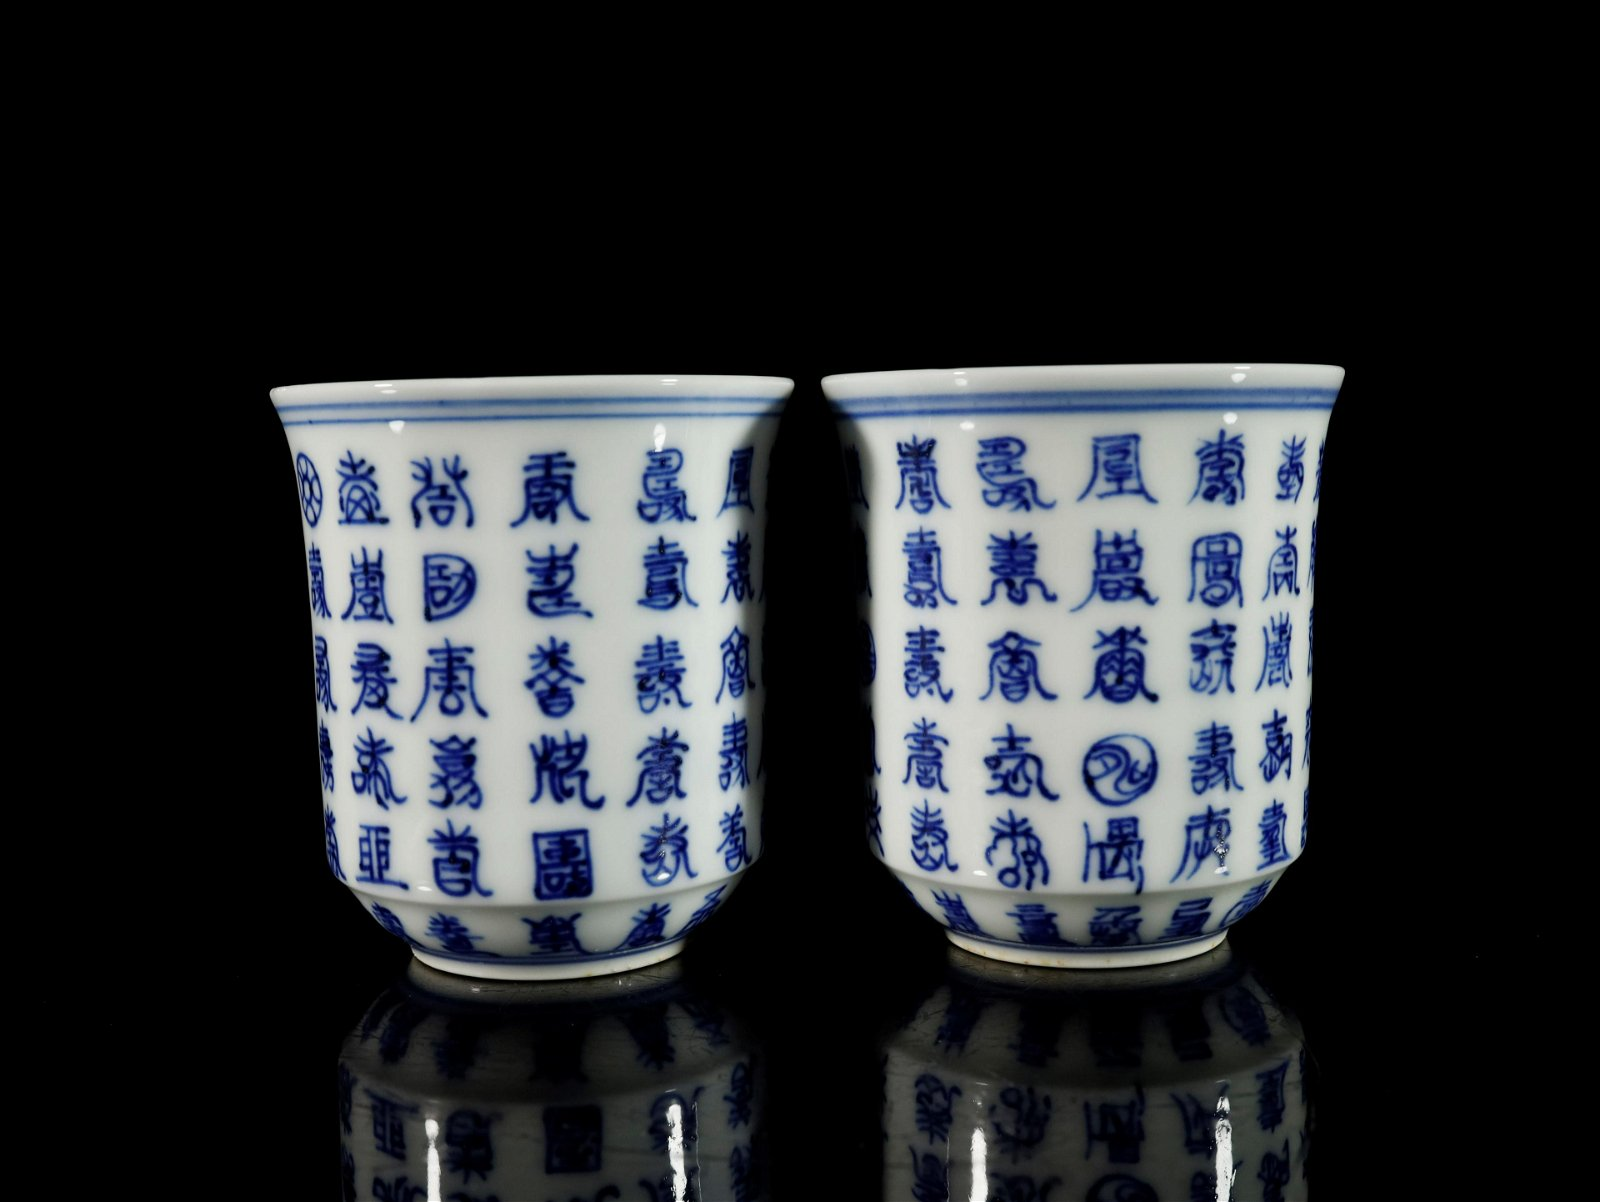 A Fine Pair of Blue and White Cups